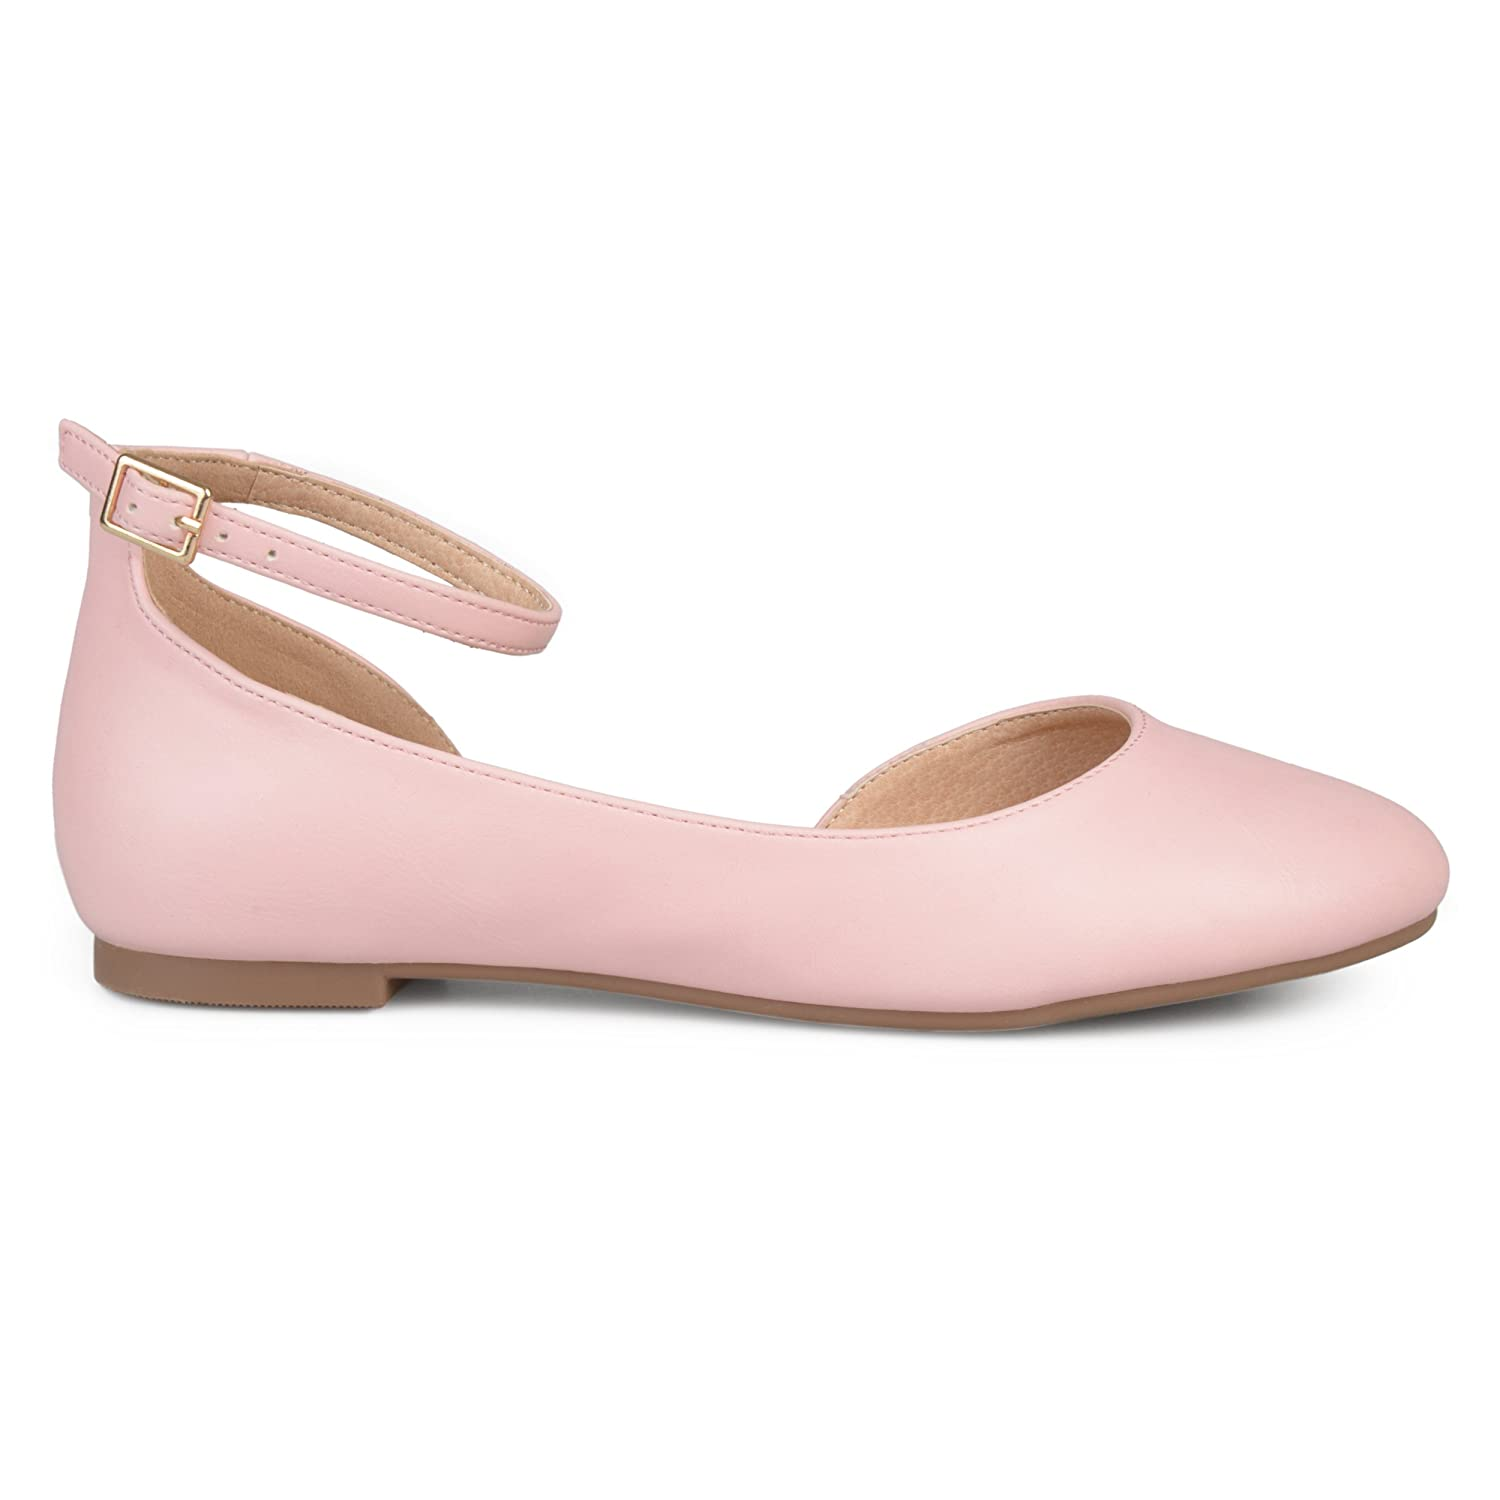 Brinley Co Womens ARO Faux Leather Wide Width Ankle Strap Round Toe D'Orsay Flats B074WH7L75 8.5 B(M) US|Pink